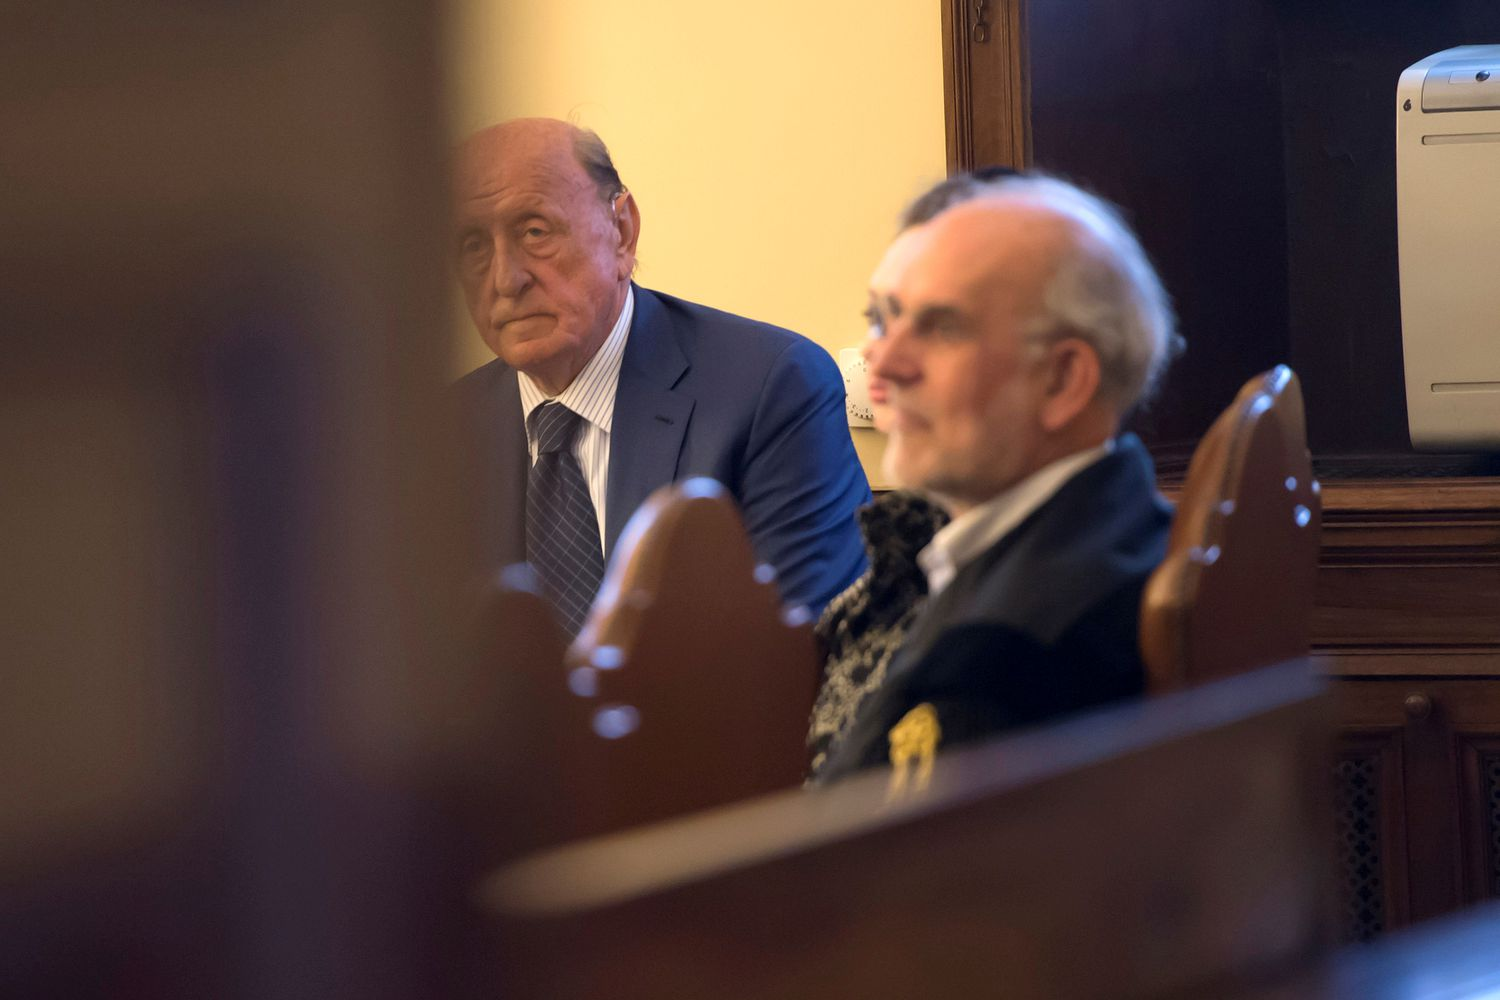 Vatican Condemns The Former President Of Its Bank For Embezzlement